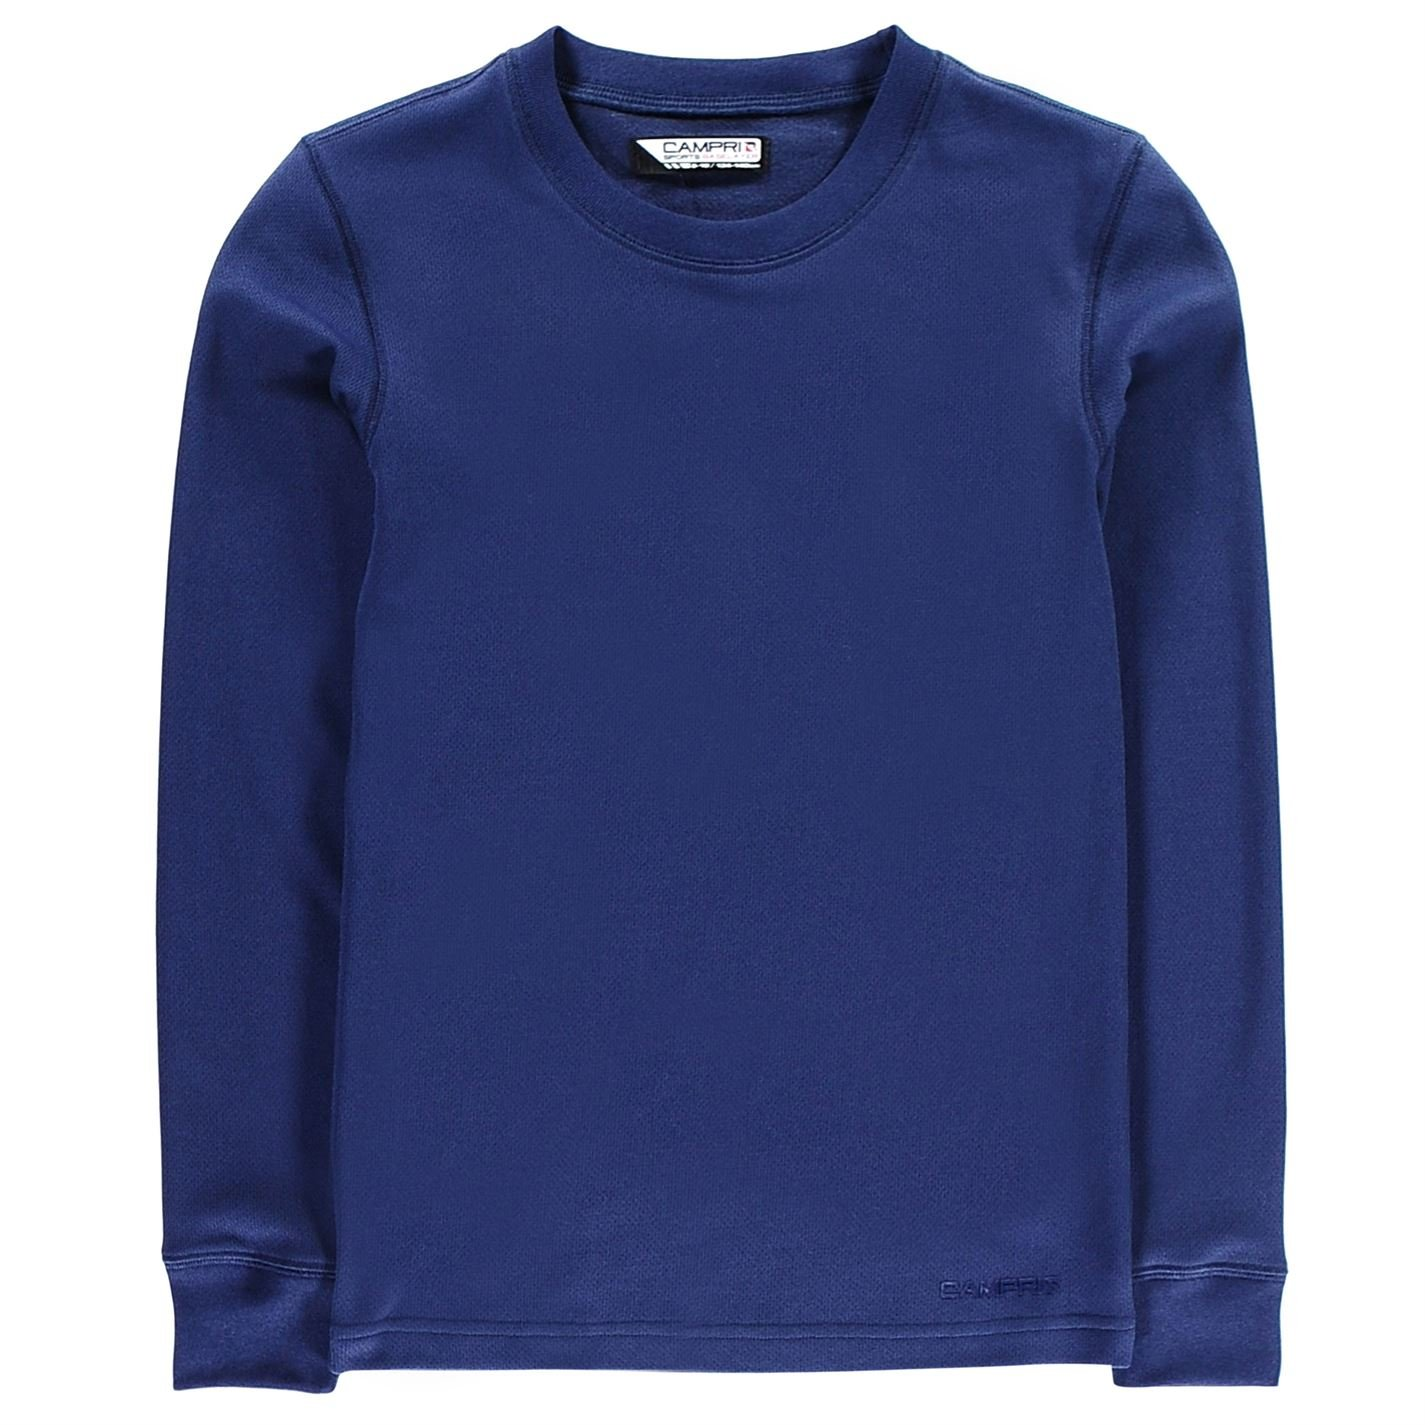 Campri Kids Thermal Baselayer Top Unisex Junior Breathable Ribbed Crew Neck